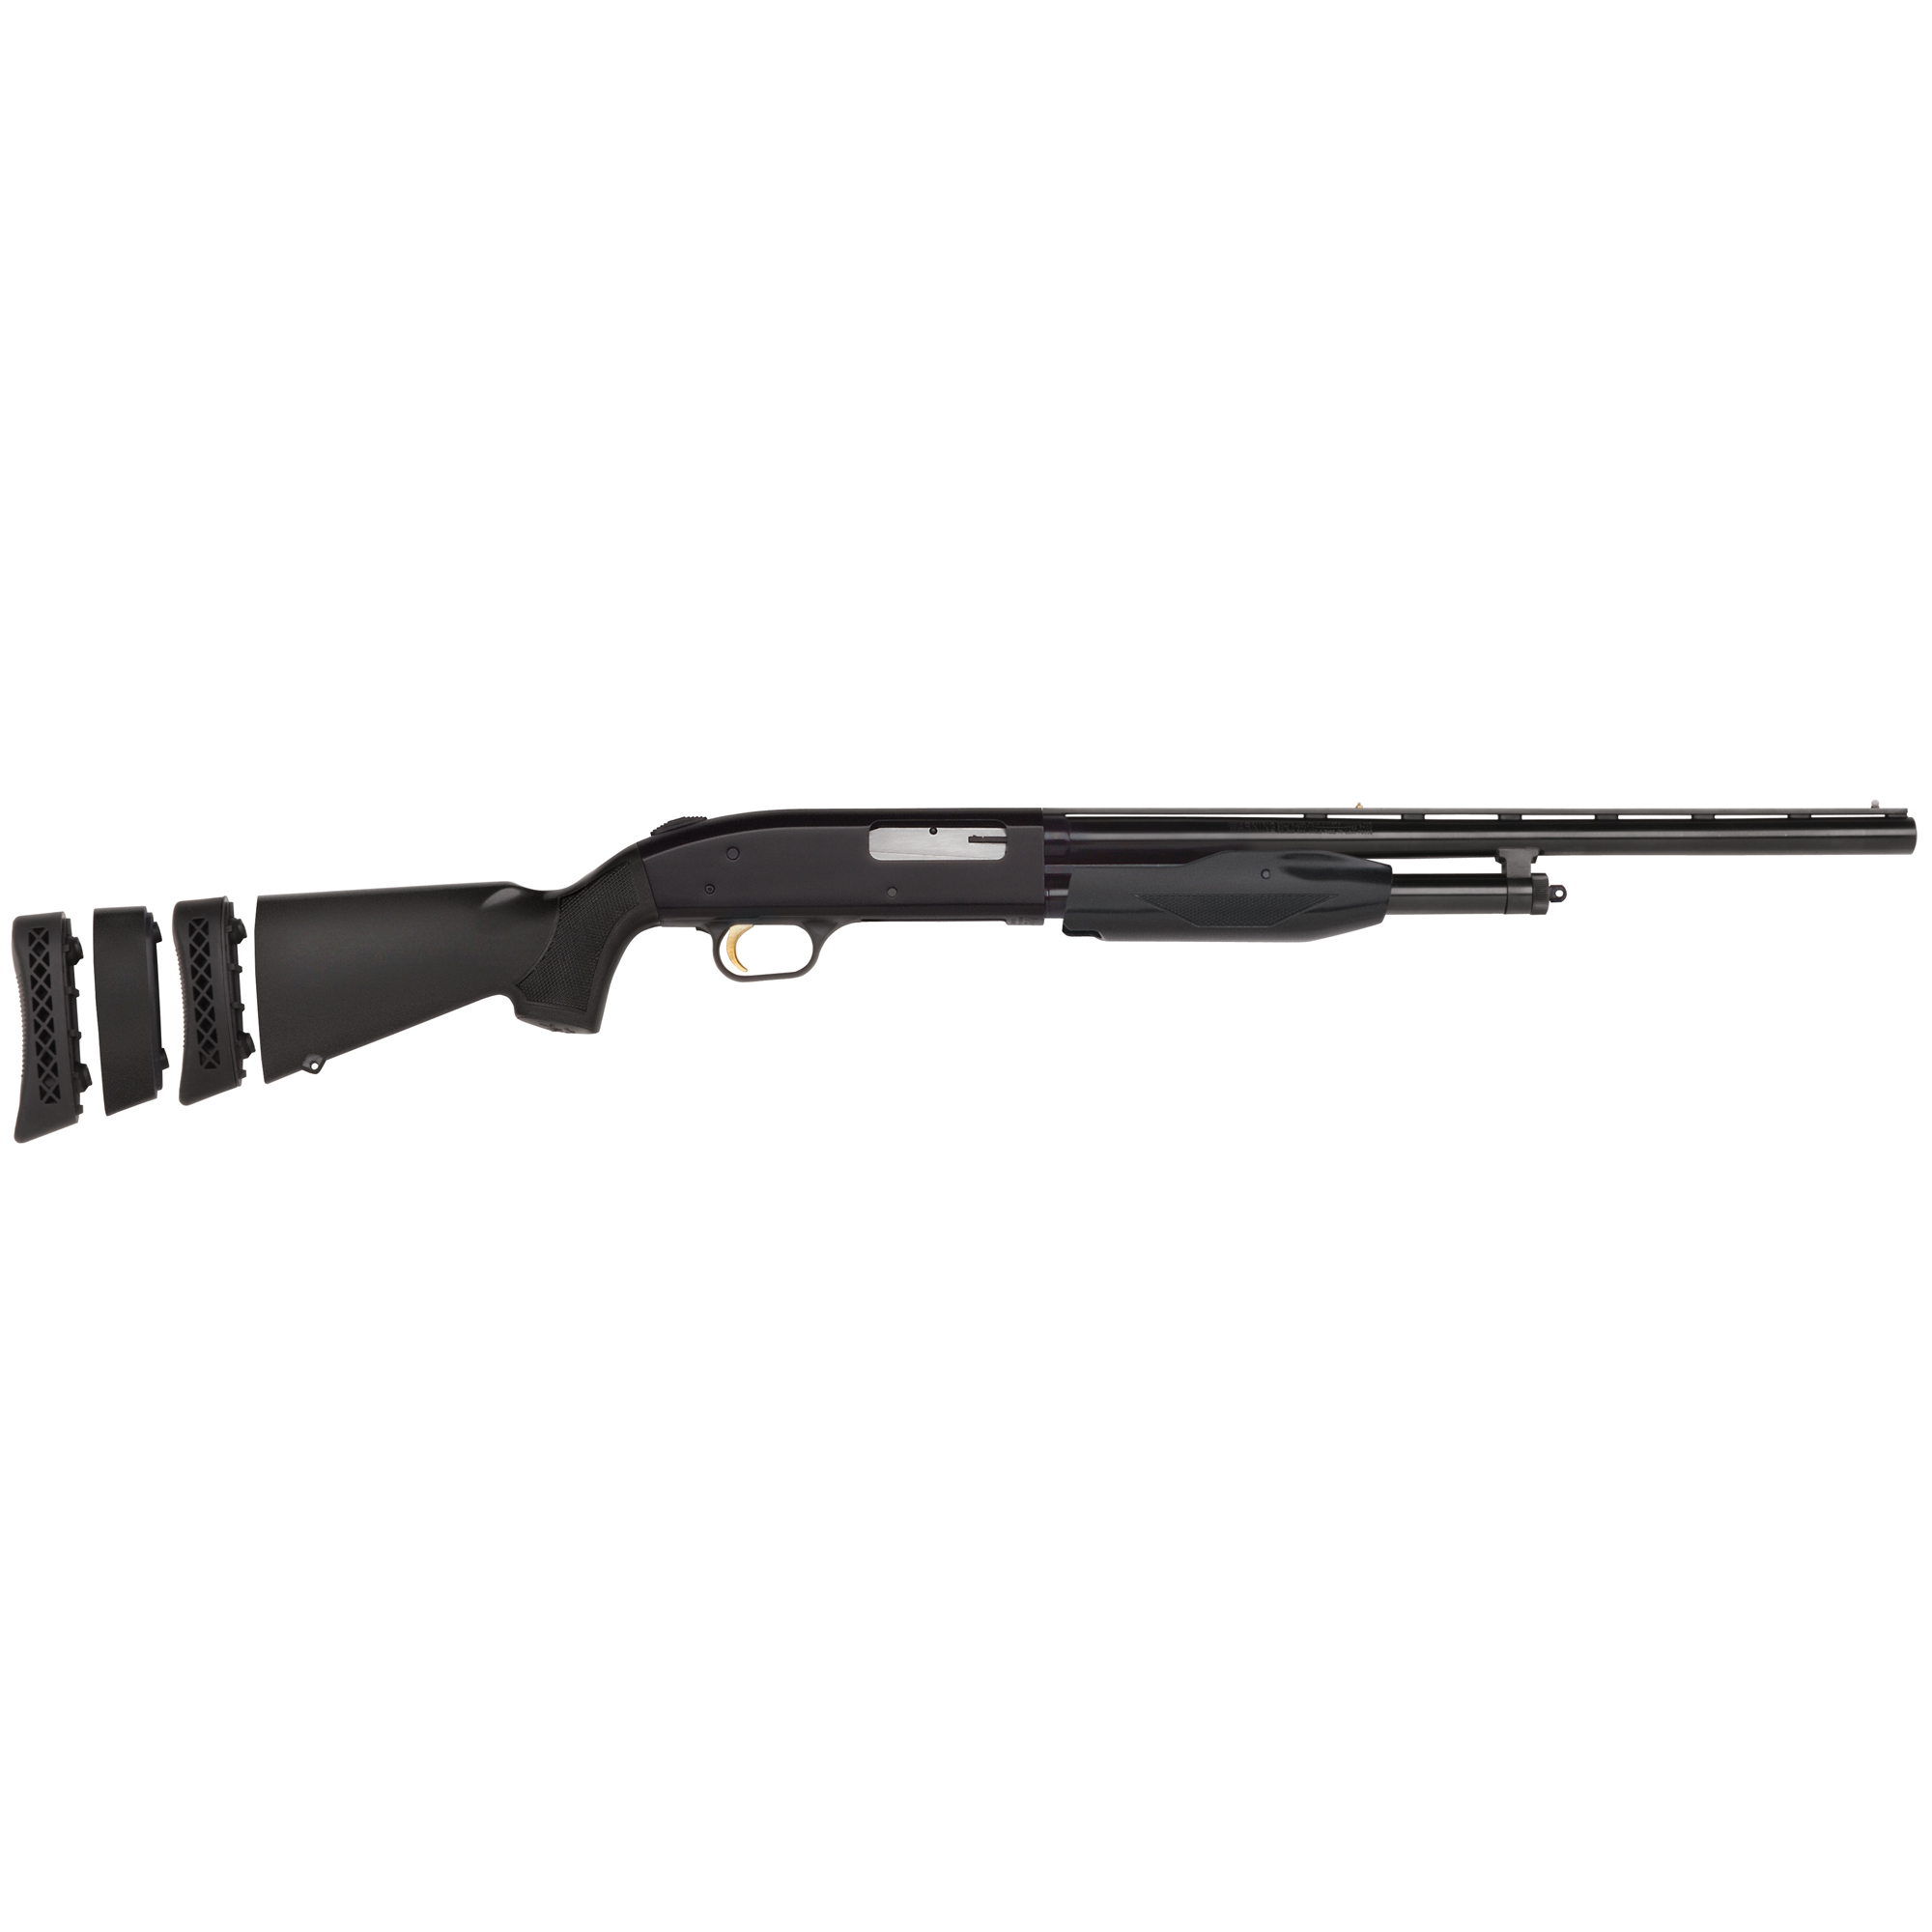 """From EZ-Reach forends located closer to the receiver"""" to its innovative Super Bantam stock spacer adjustment system designed to grow with the shooter"""" Mossberg is one of the industry's strongest advocates for promoting safe"""" enjoyable"""" youth recreational shooting."""